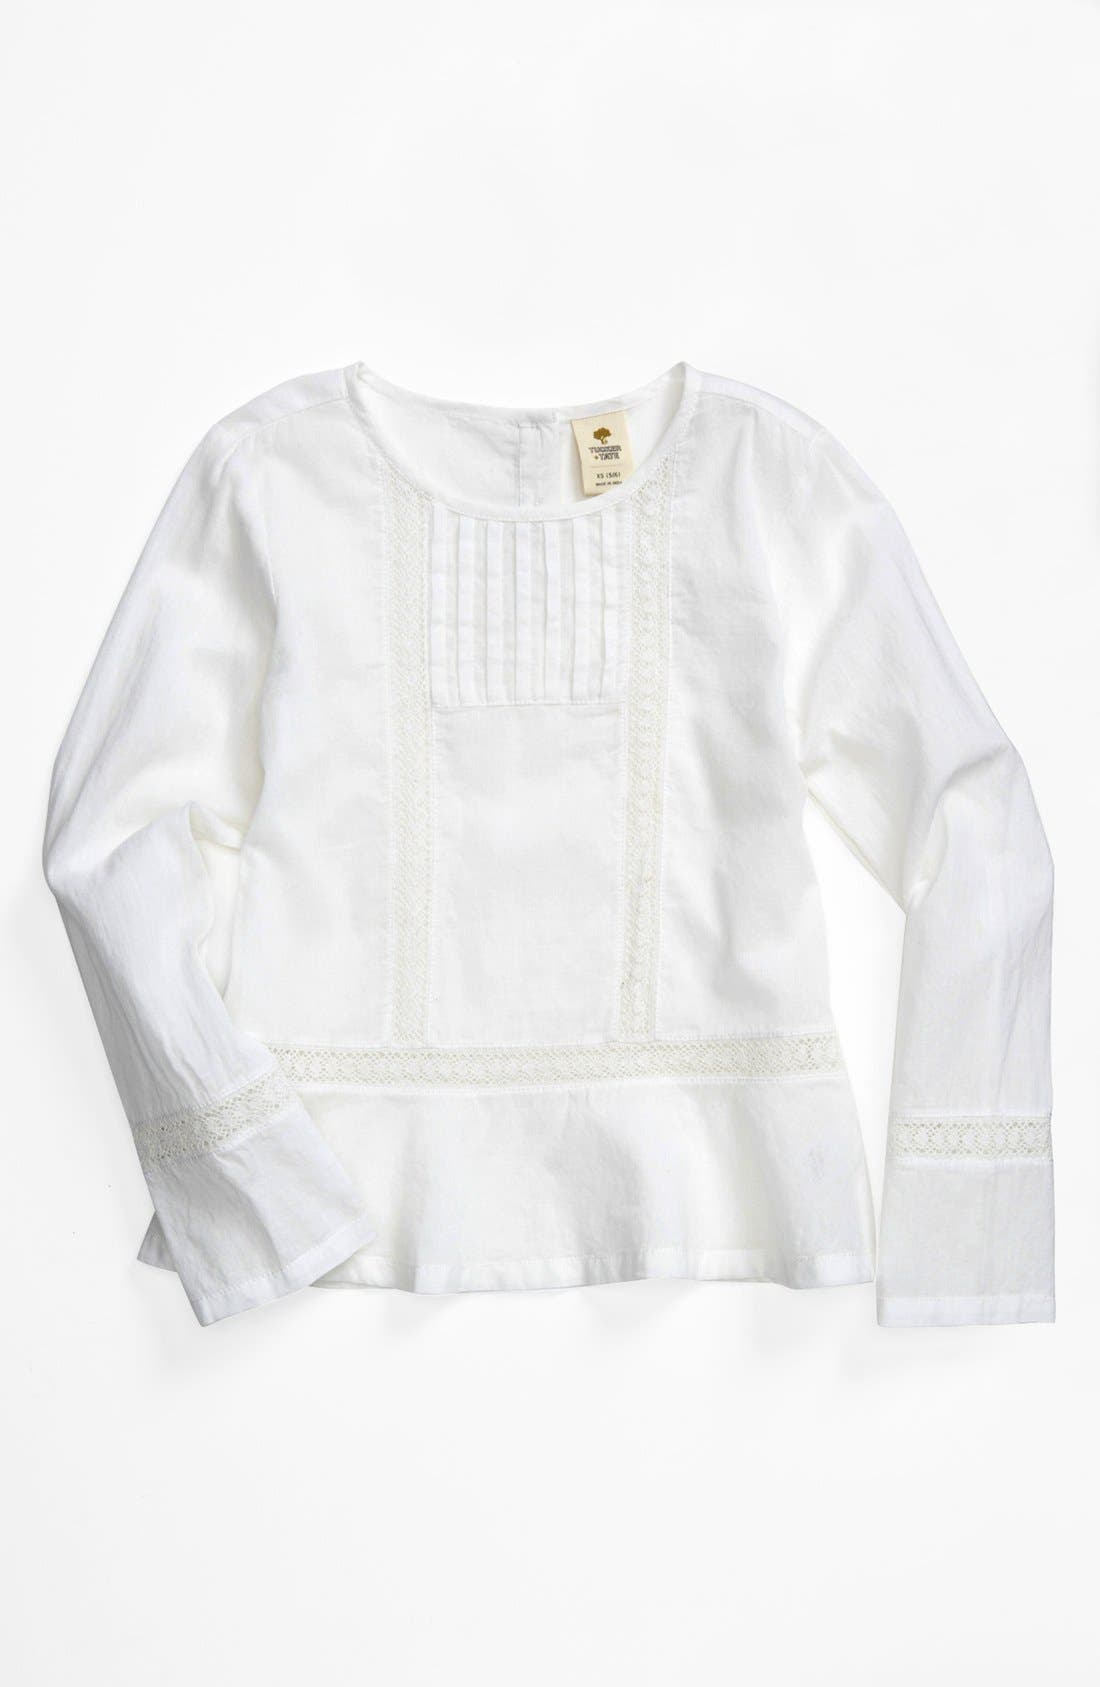 Alternate Image 1 Selected - Tucker + Tate 'Nicky' Woven Tunic (Little Girls)